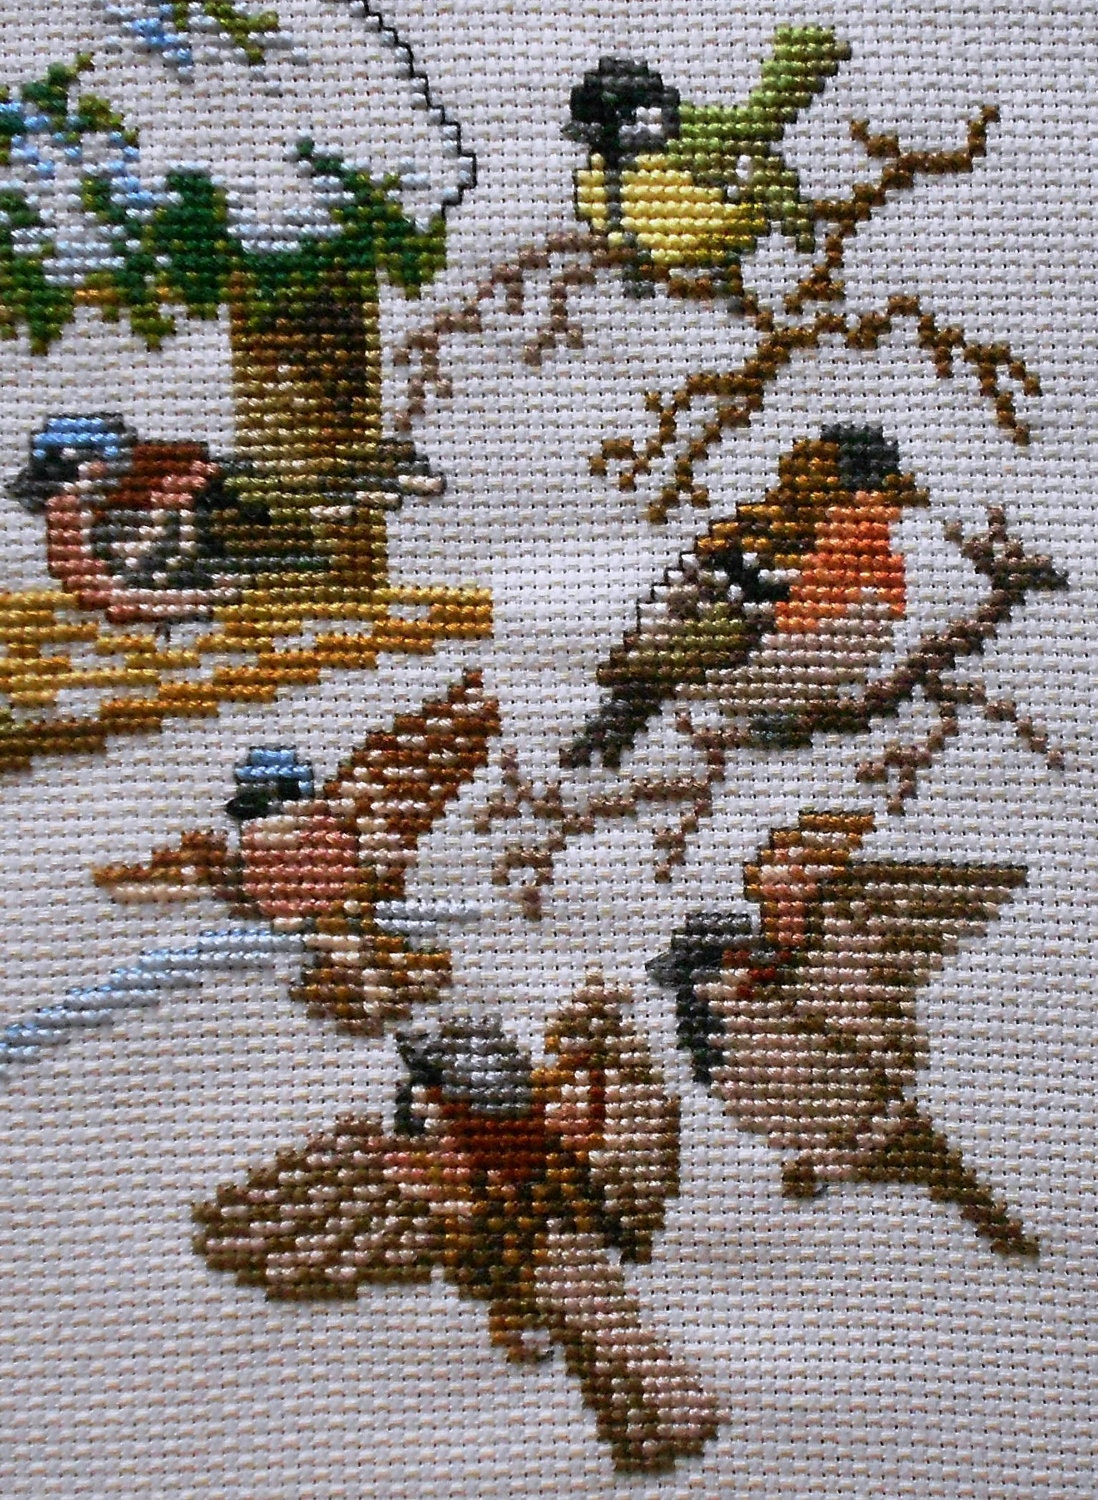 Exquisite Finished Completed Counted Cross Stitch Picture